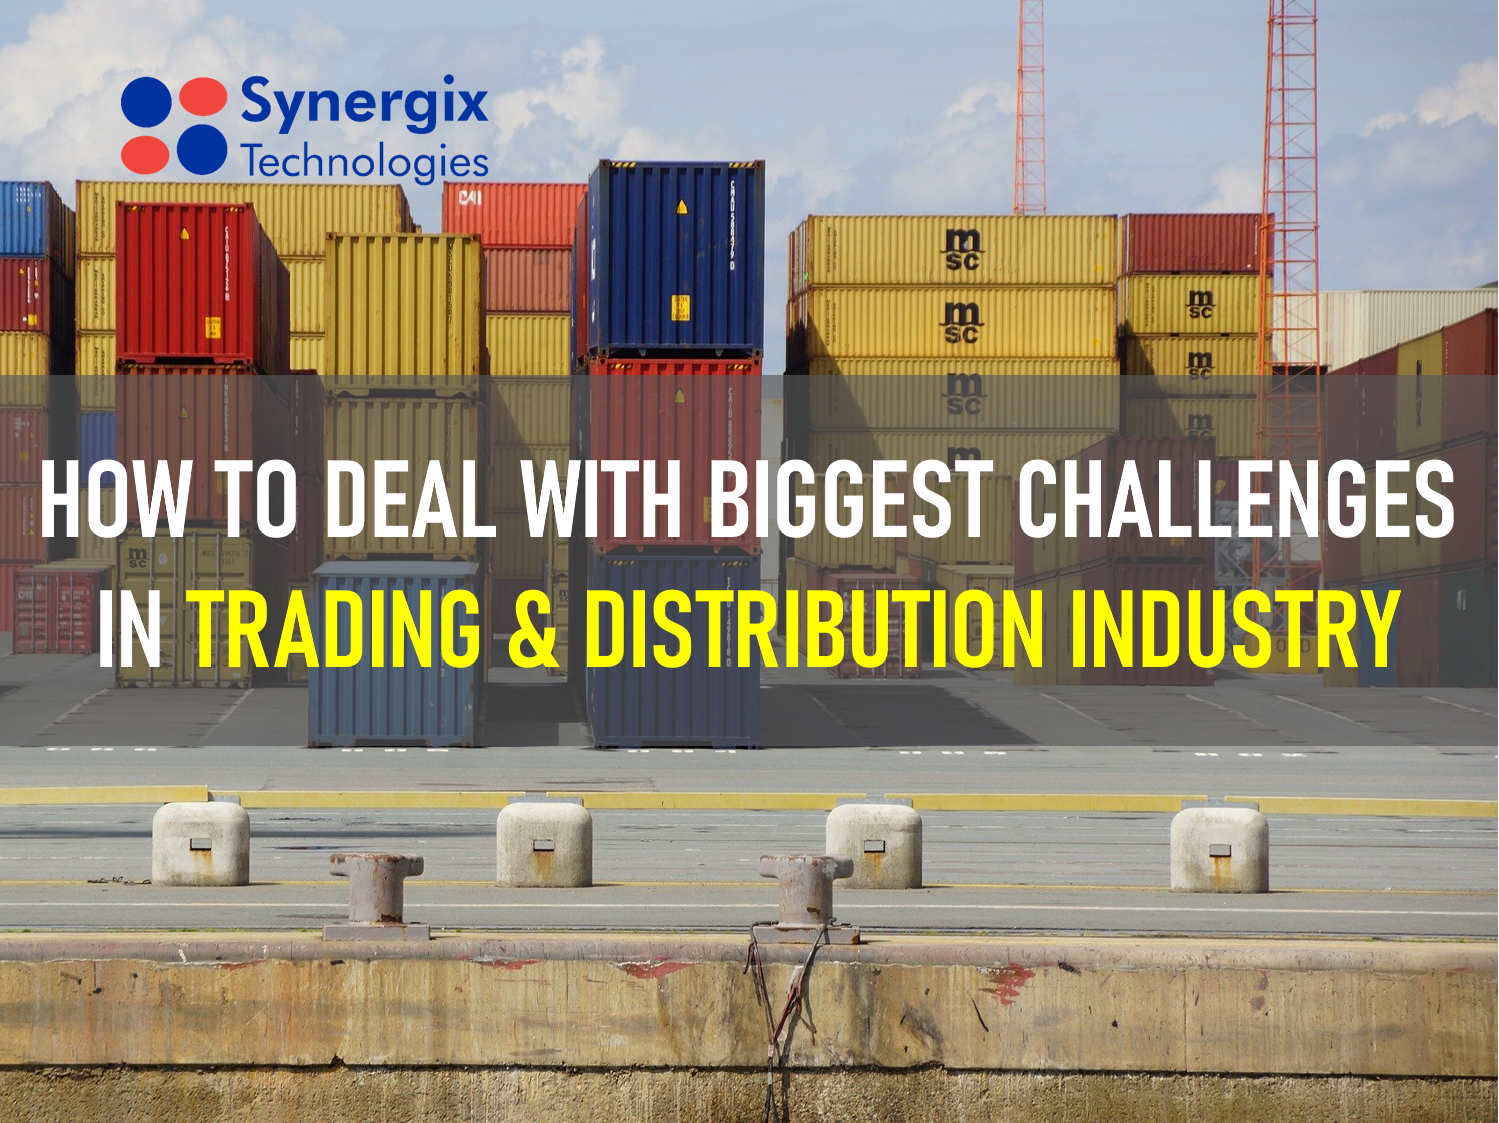 Common Challenges in Trading & Distribution Industry